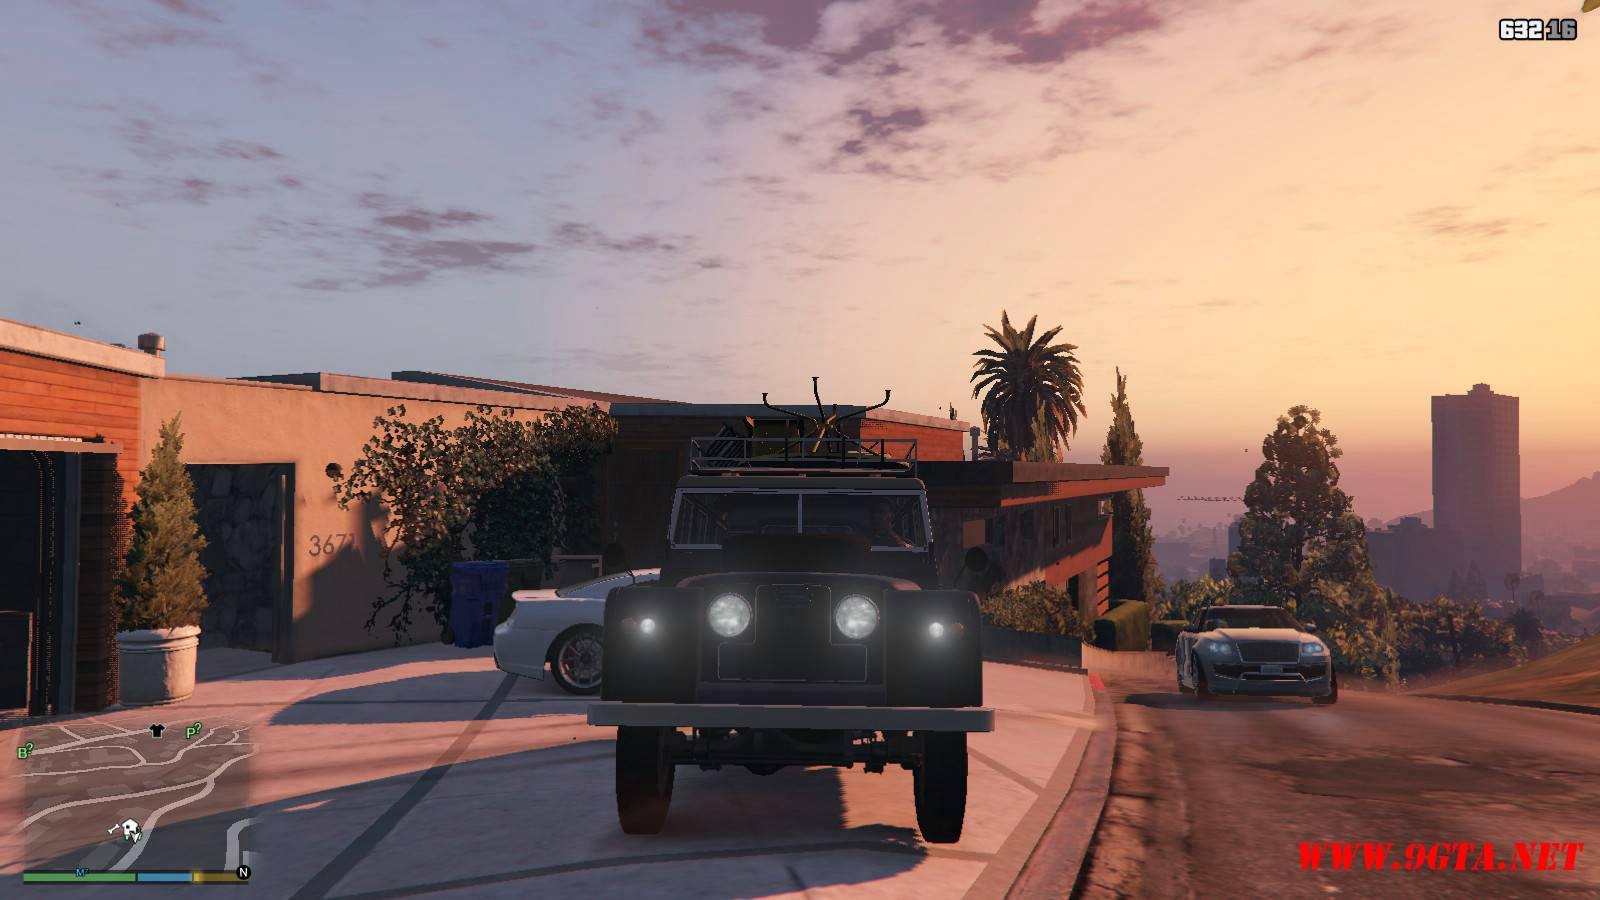 1971 Land Rover Series II Model 109A GTA5 Mods (6)